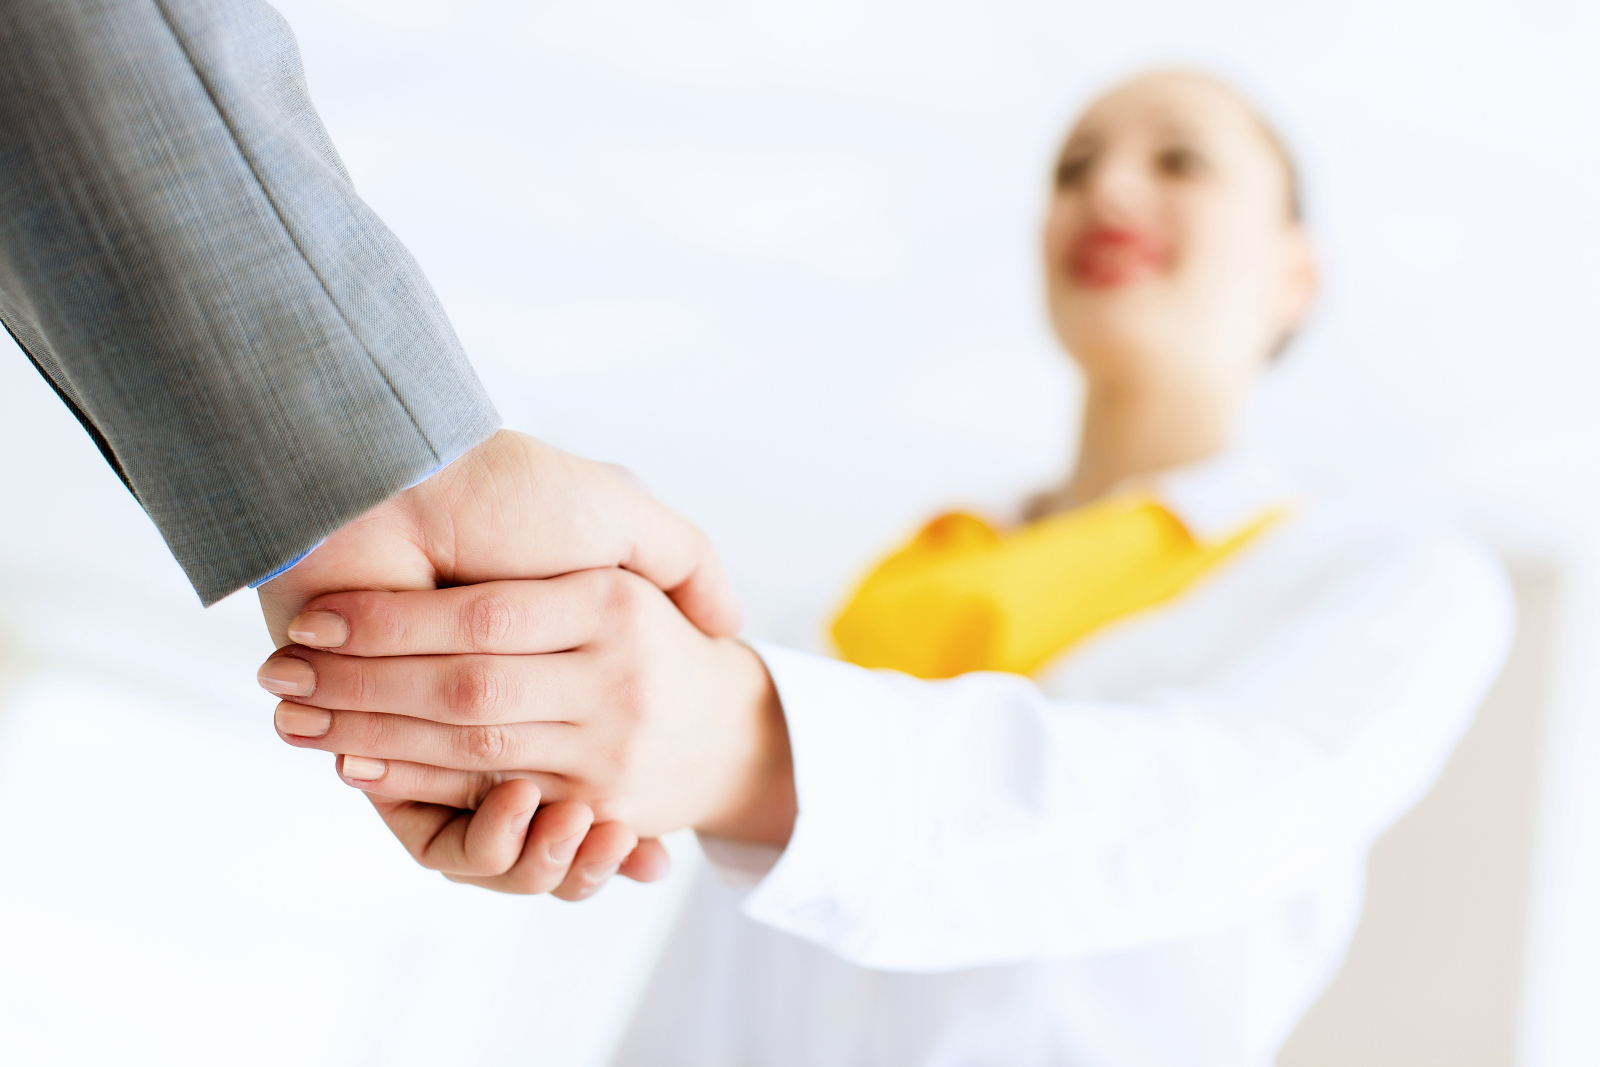 Man and woman professionals shaking hands.